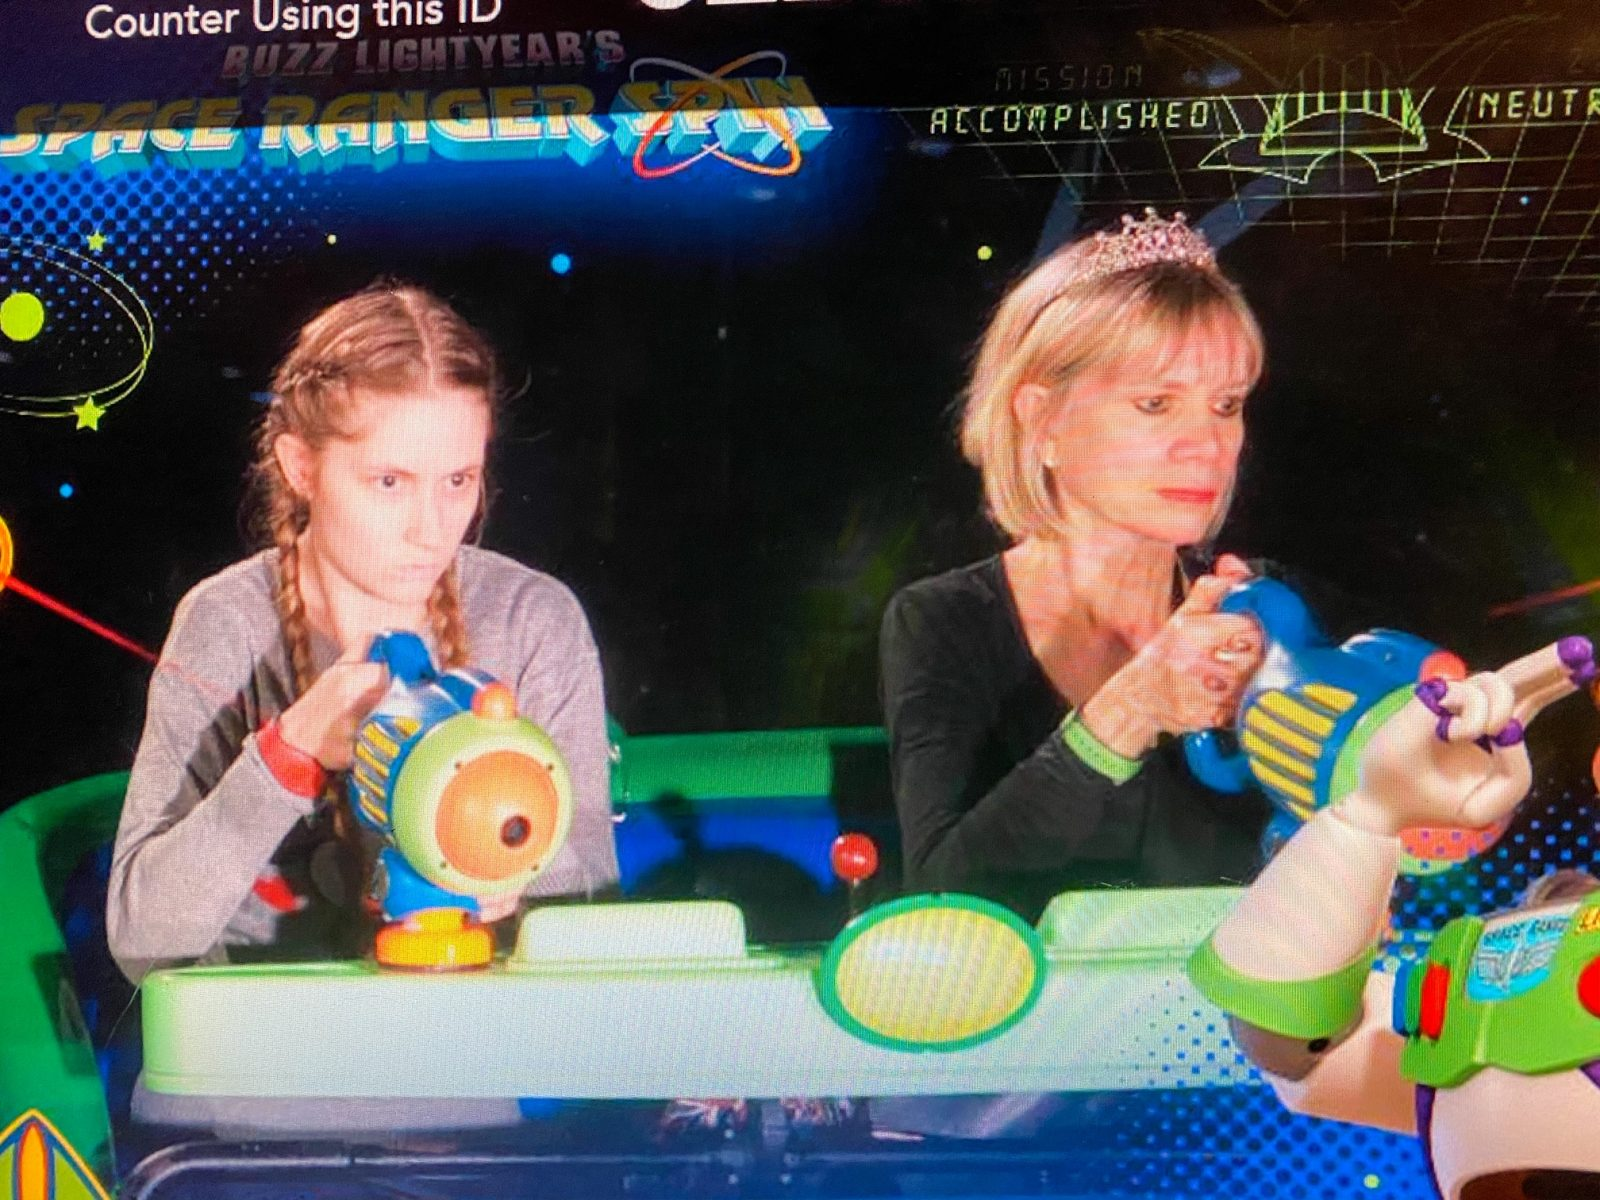 buzz lightyear ride photo with Linda Malys Yore and Victoria Yore